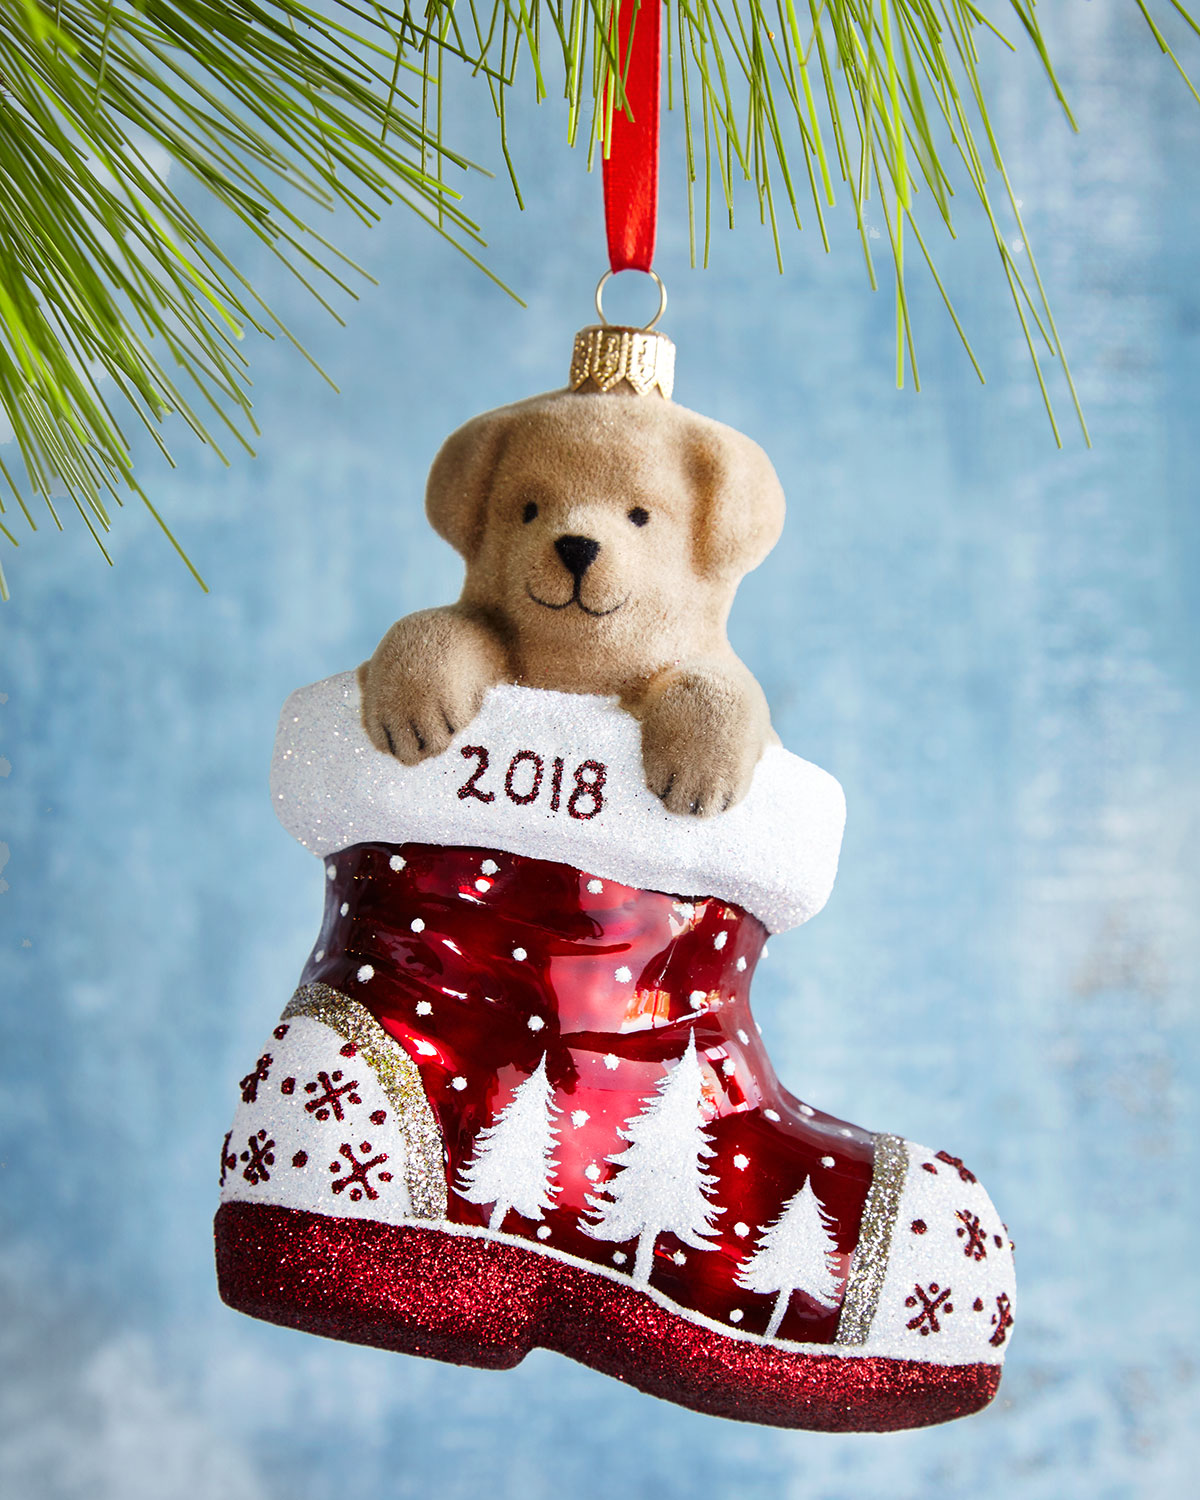 Charlie in the Boot Annual Ornament